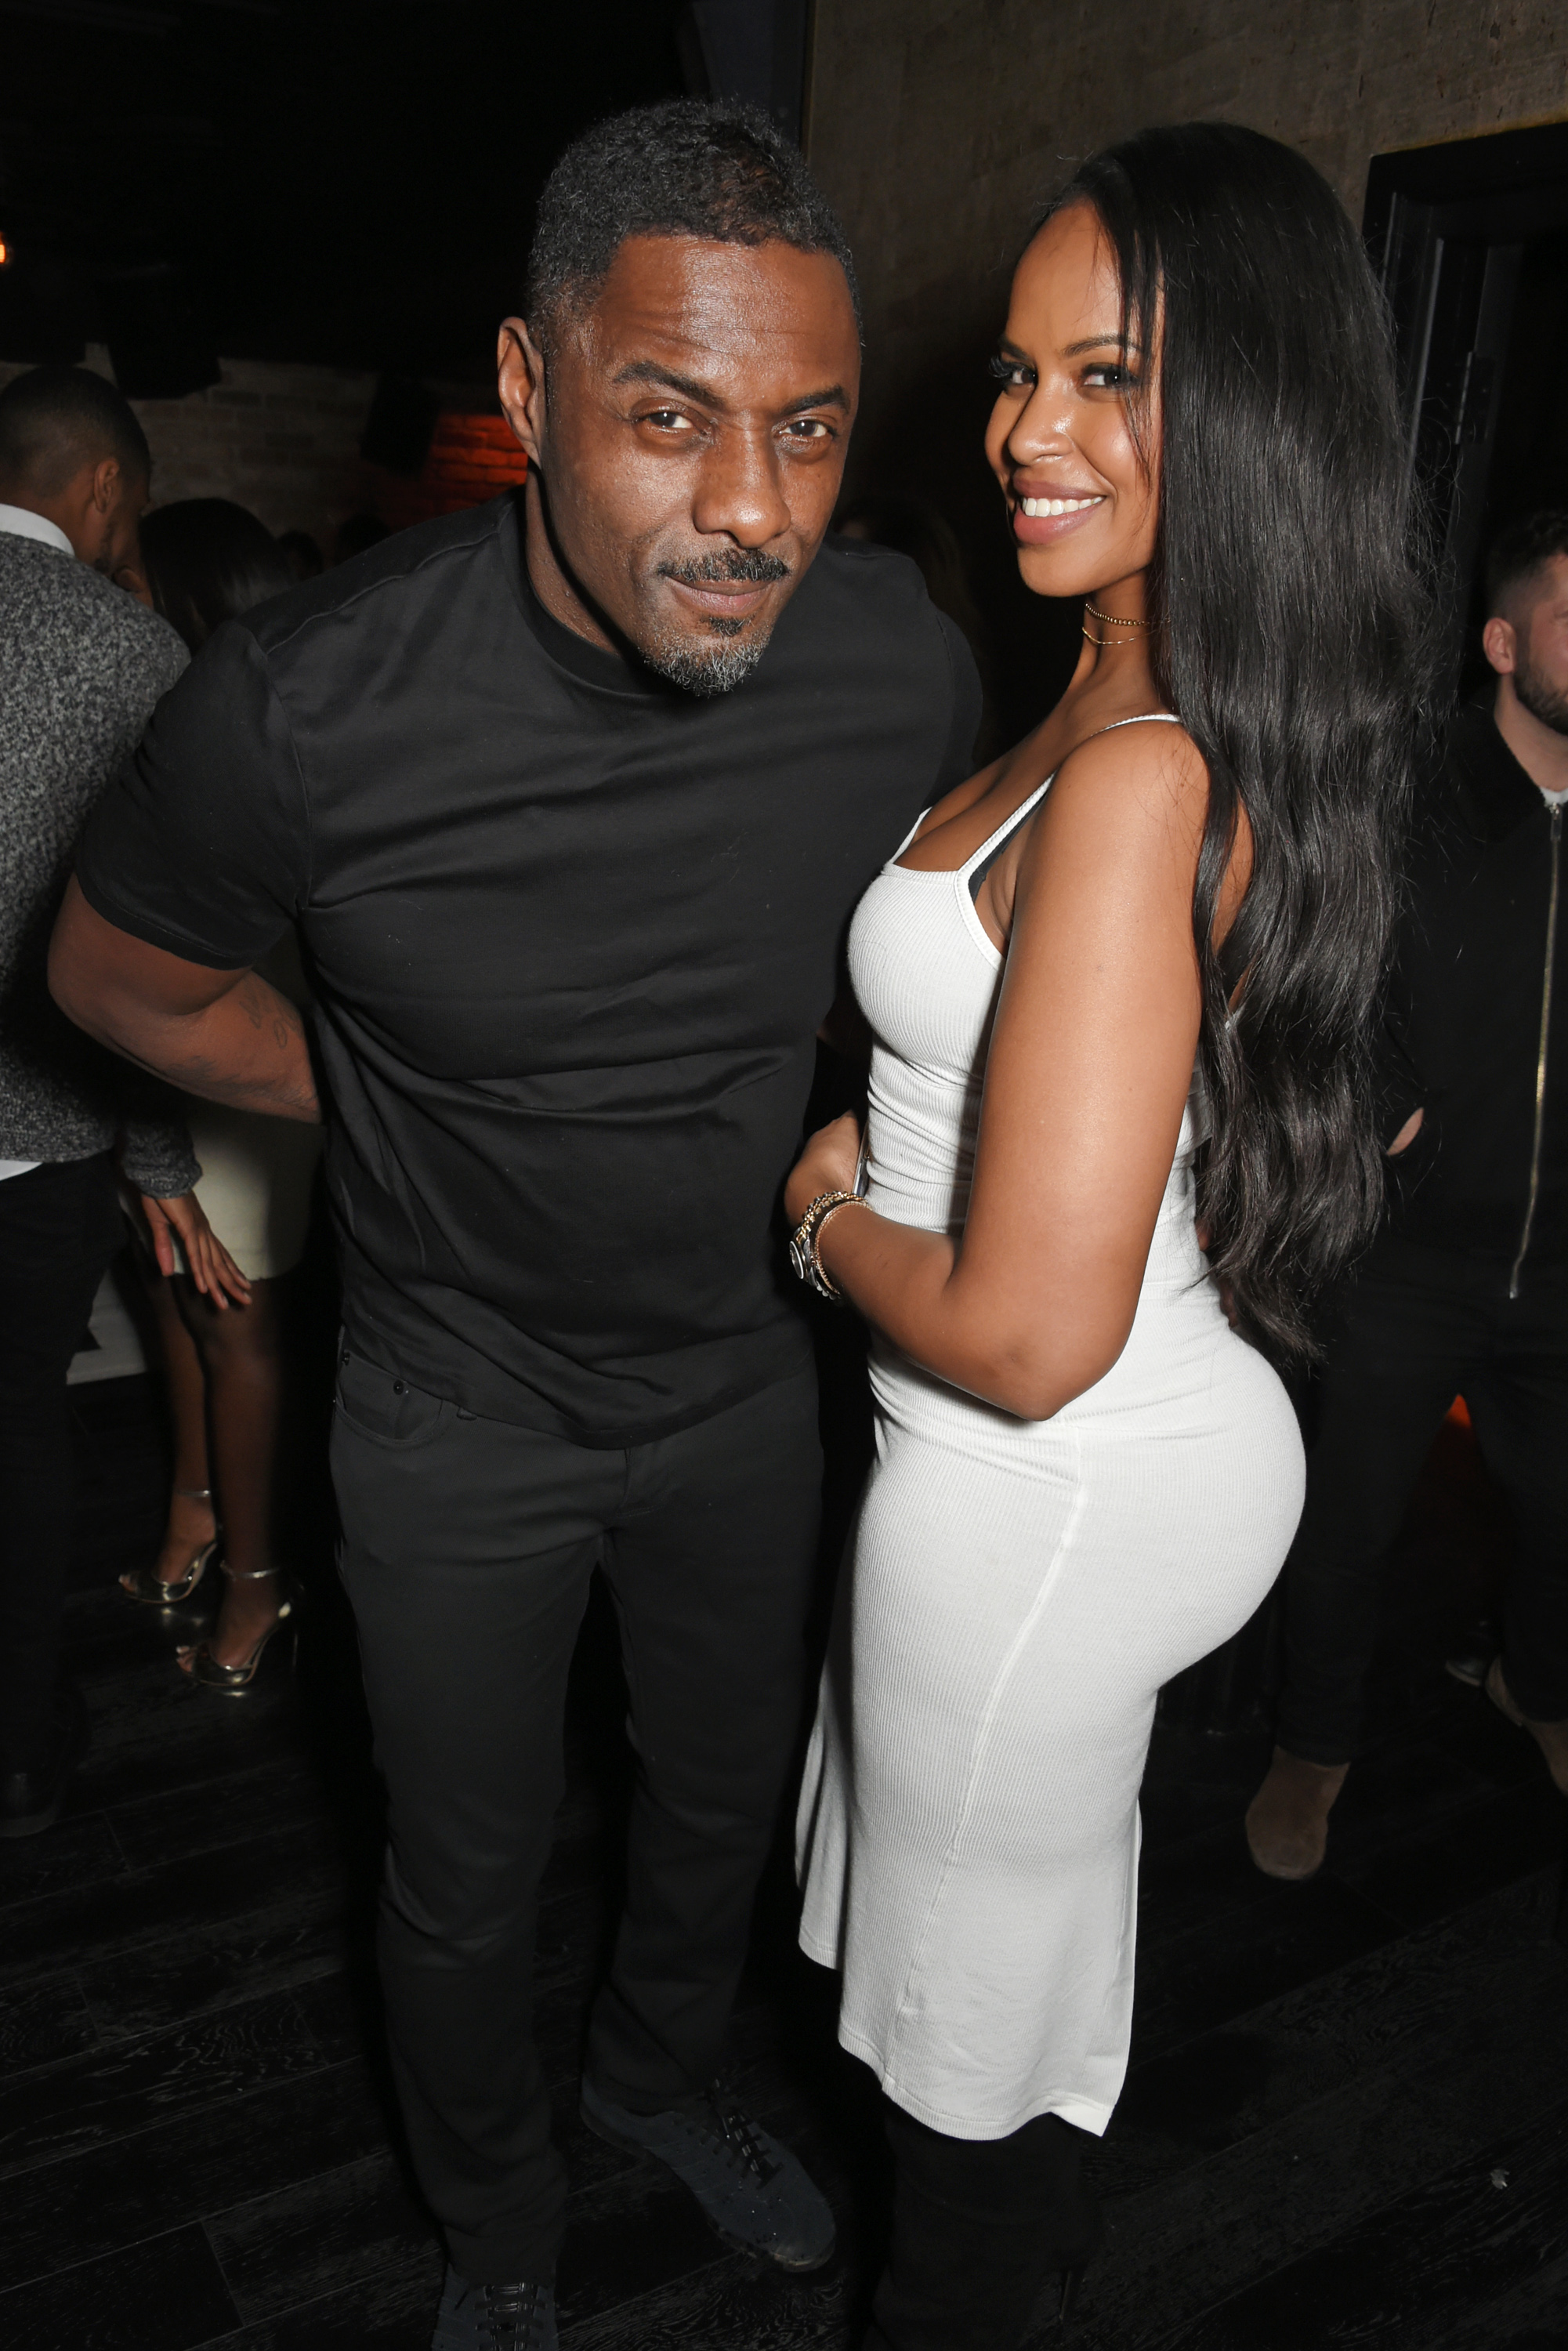 Idris Elba's Christmas Party At Kadie's Cocktail Bar & Club